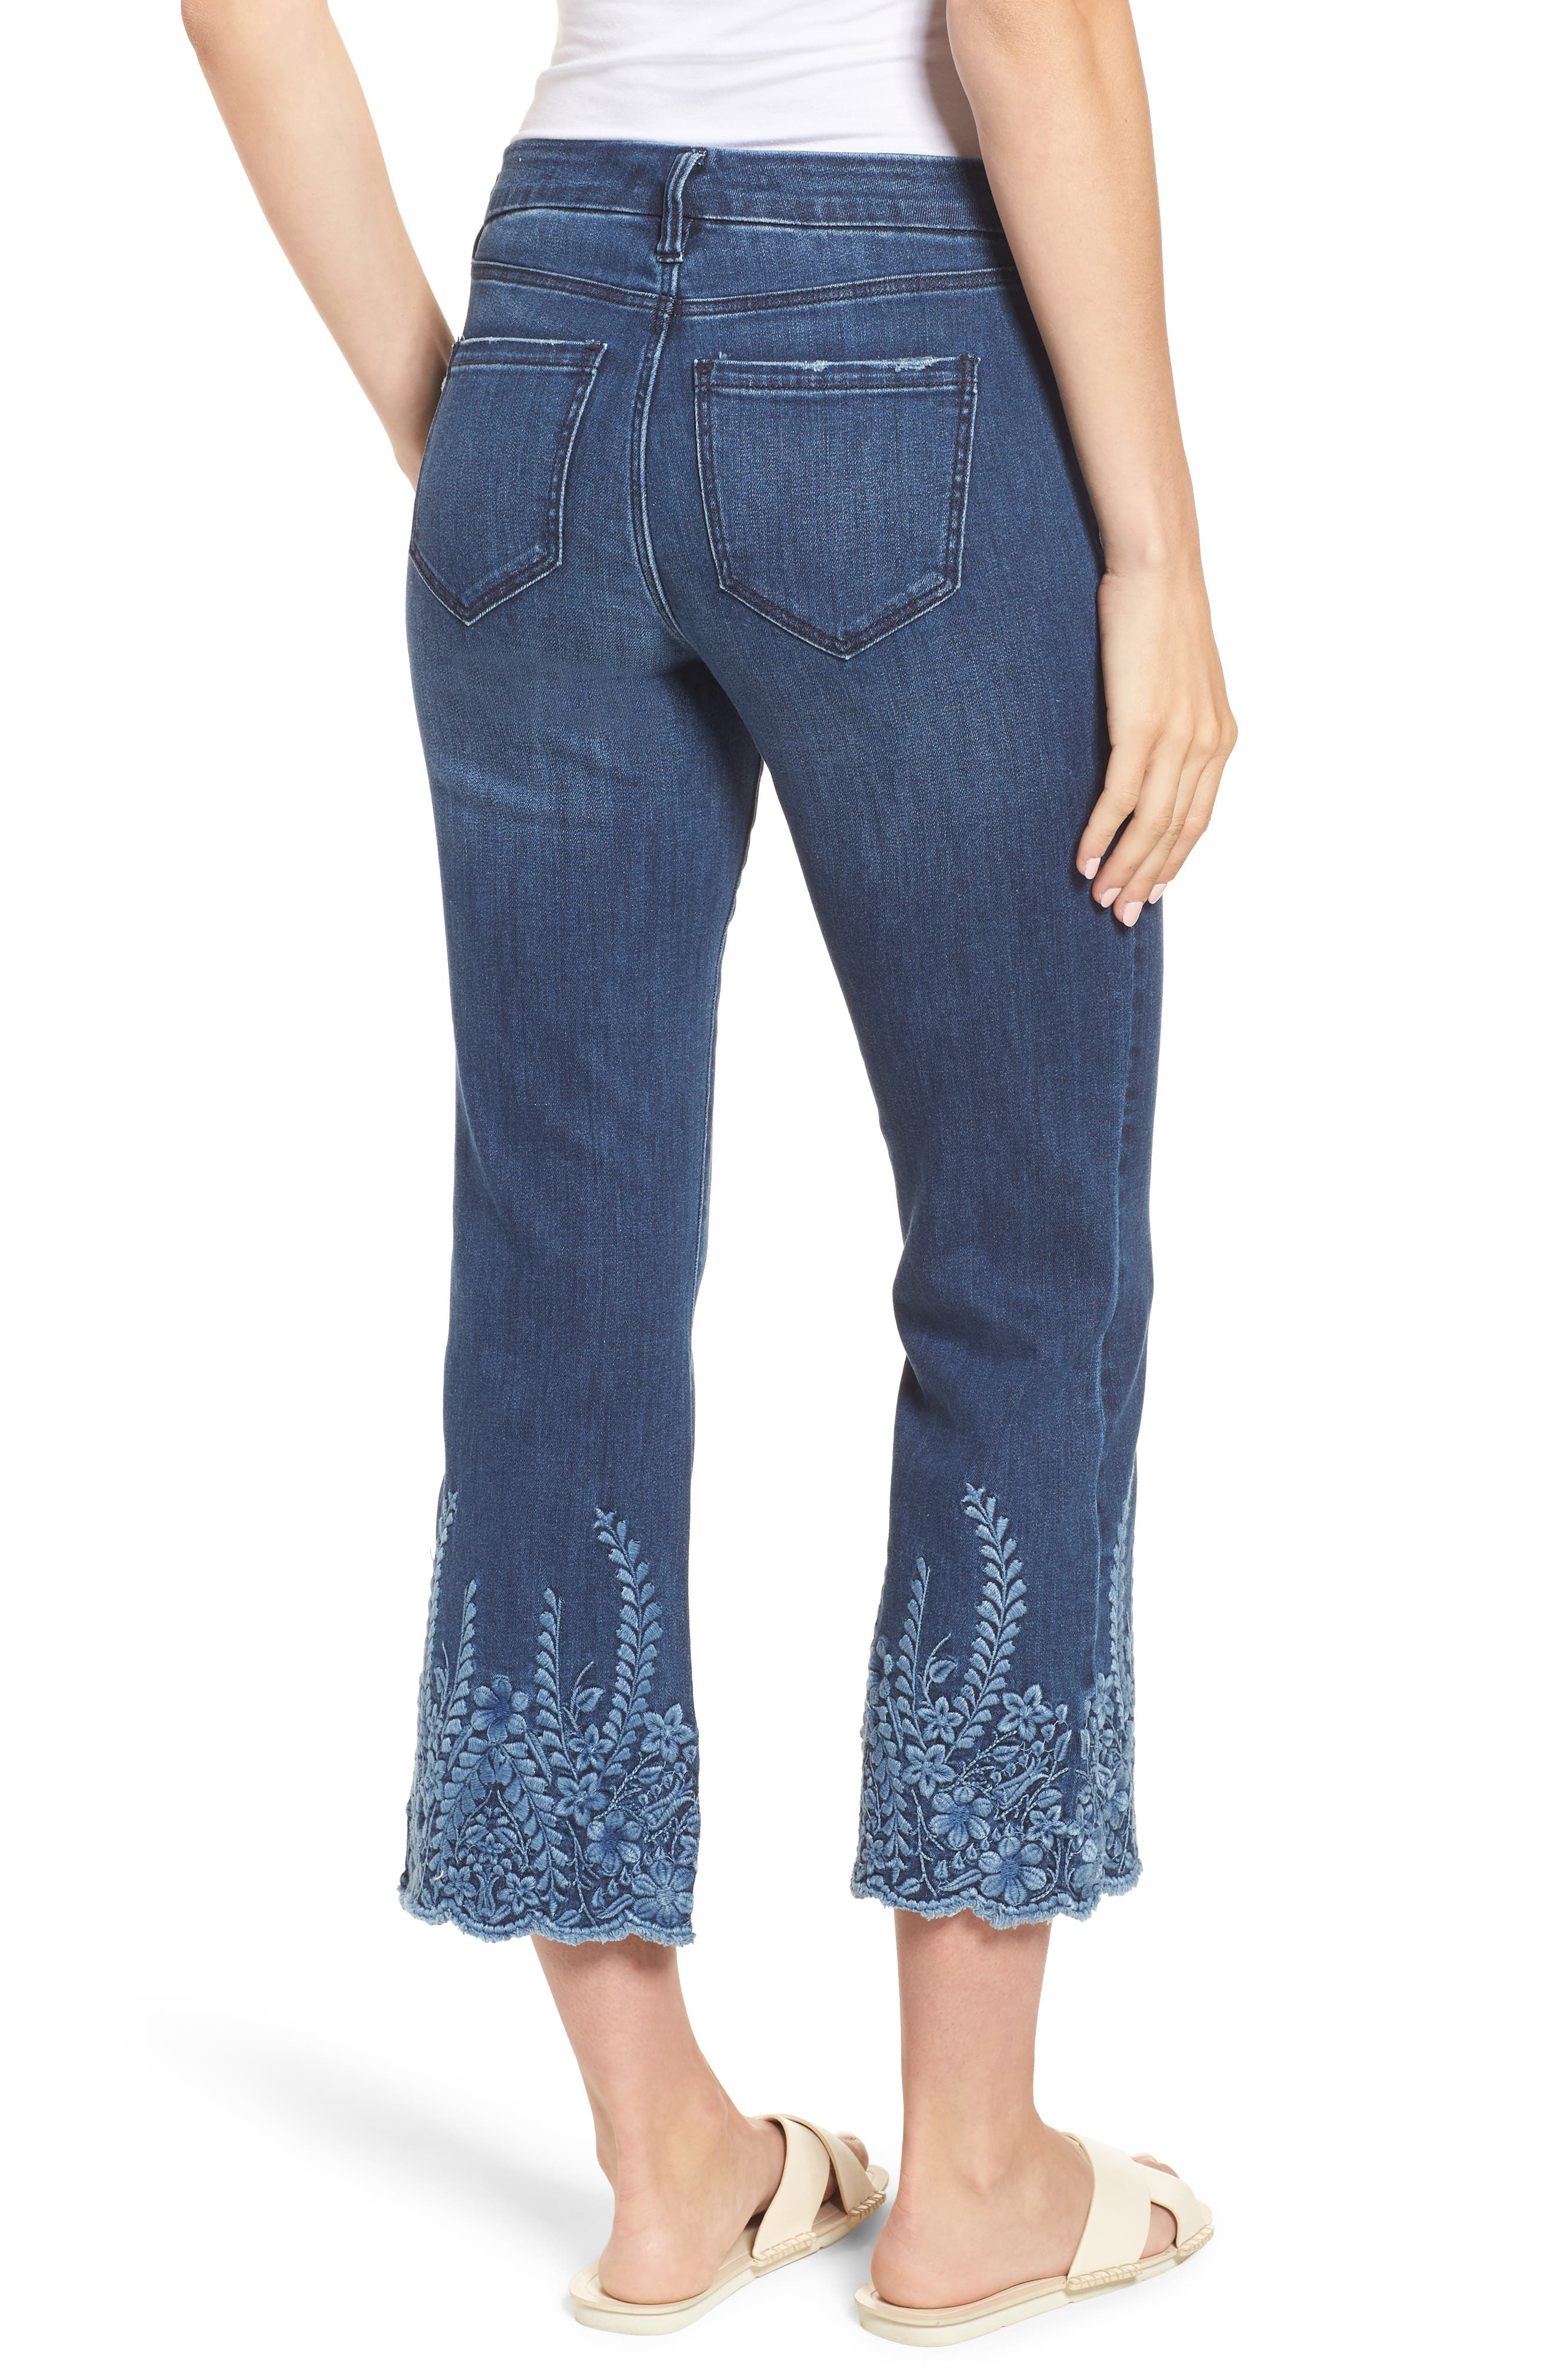 LVPL by Liverpool Coco Embroidered Hem Crop Jeans,                             Alternate thumbnail 2, color,